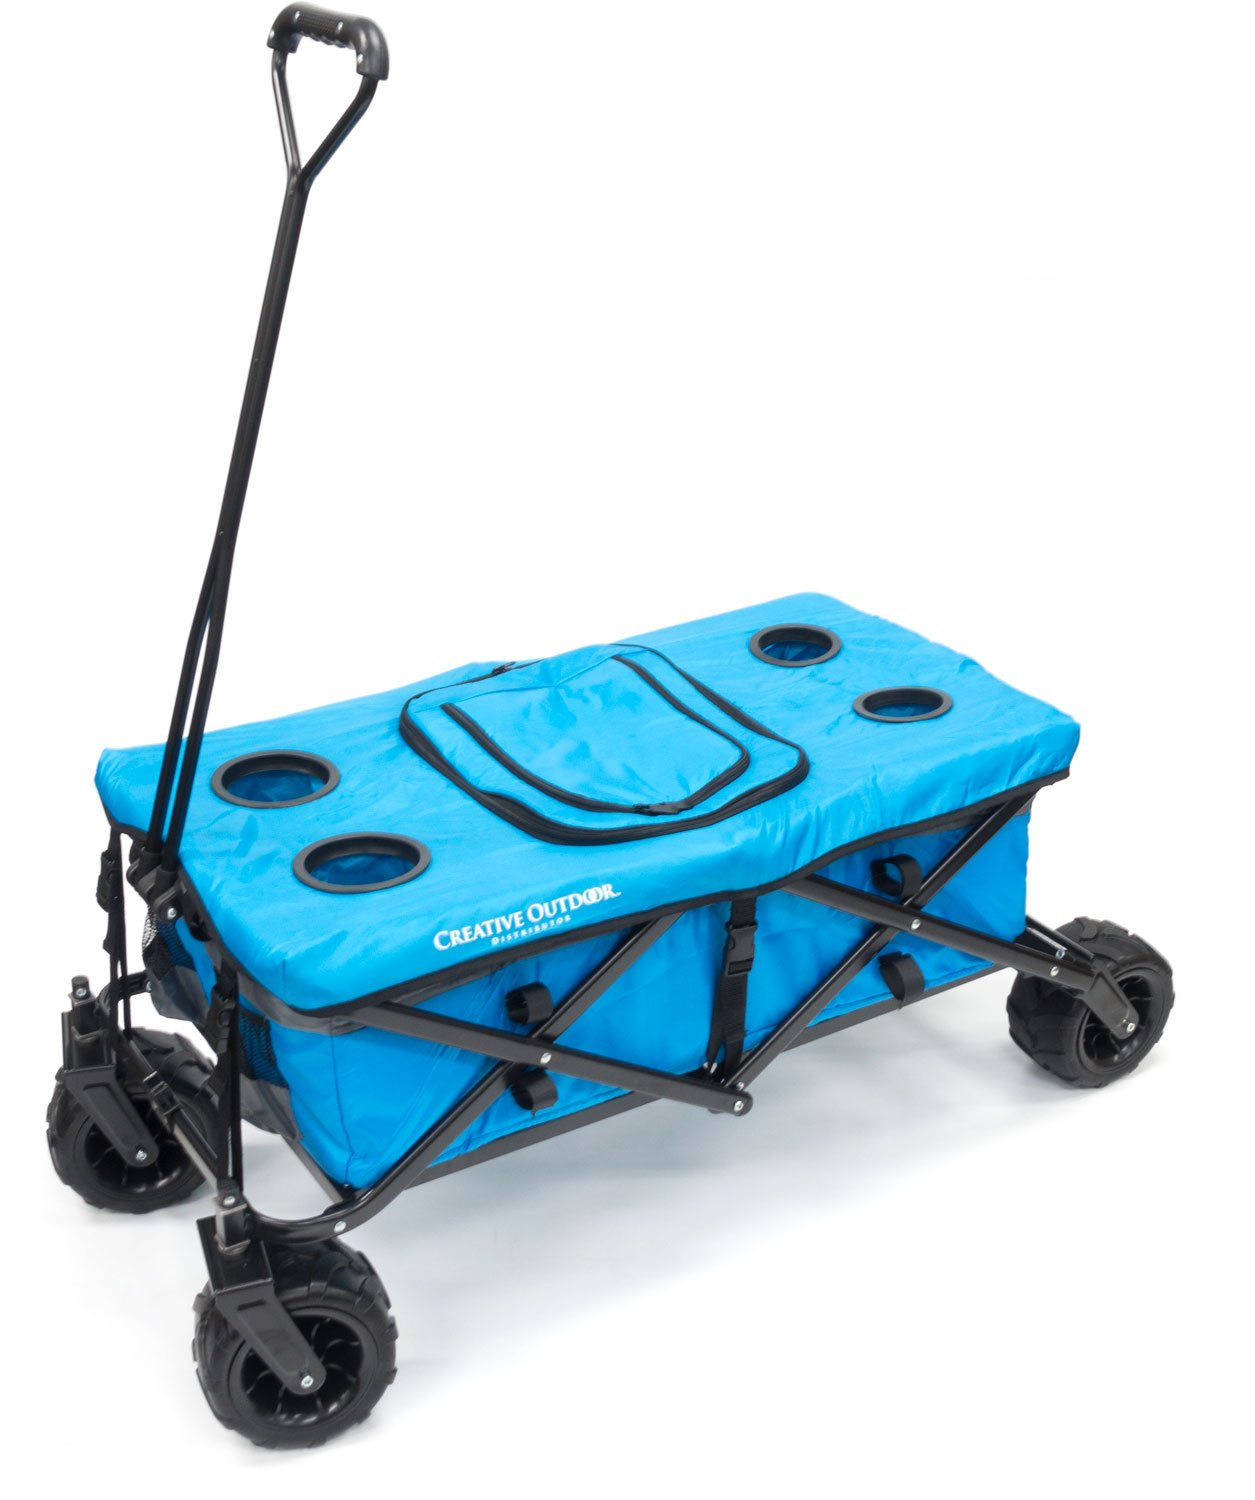 Creative Outdoor Distributor All-Terrain Folding Wagon Tabletop with Cooler Bag, Blue/Grey